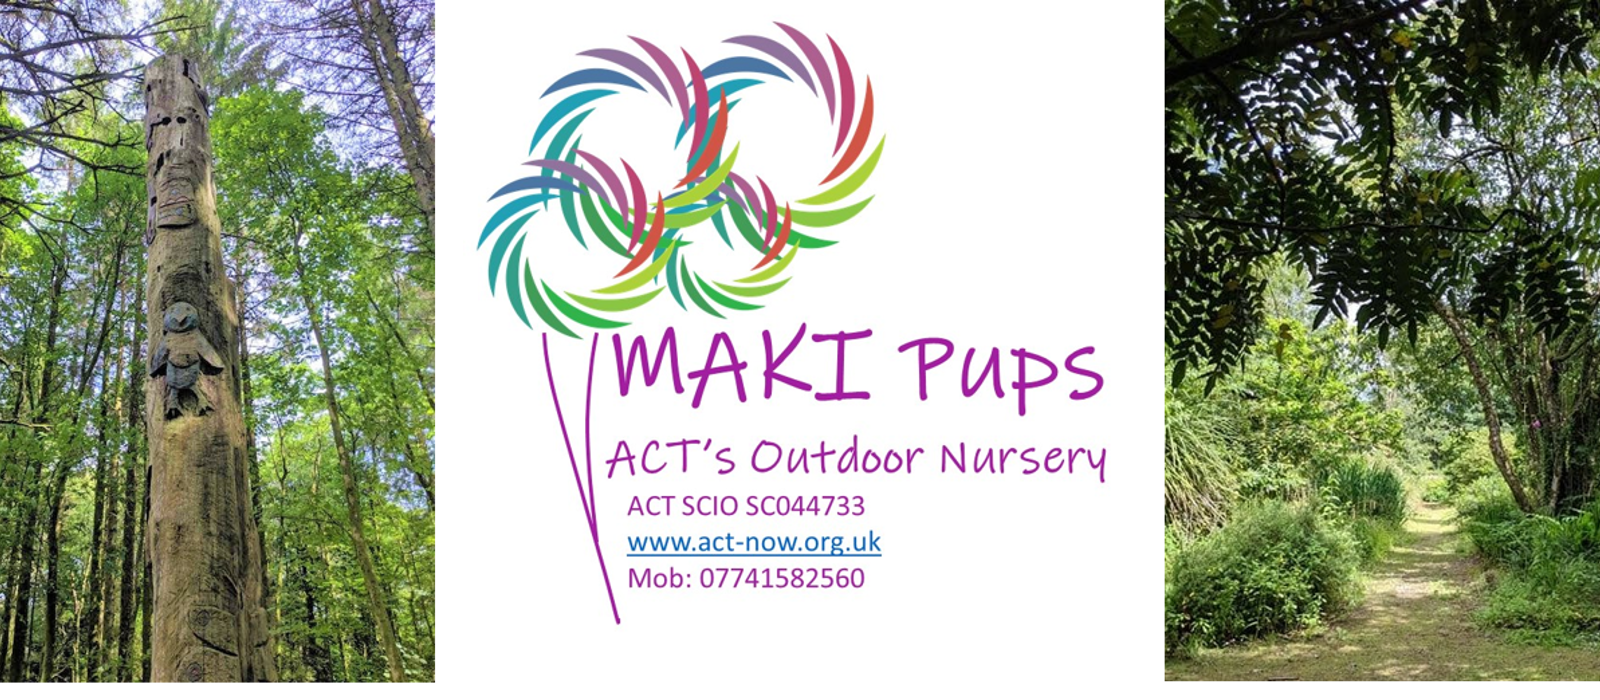 MAKI pups - ACT and Mid Argyll's first outdoor nursery